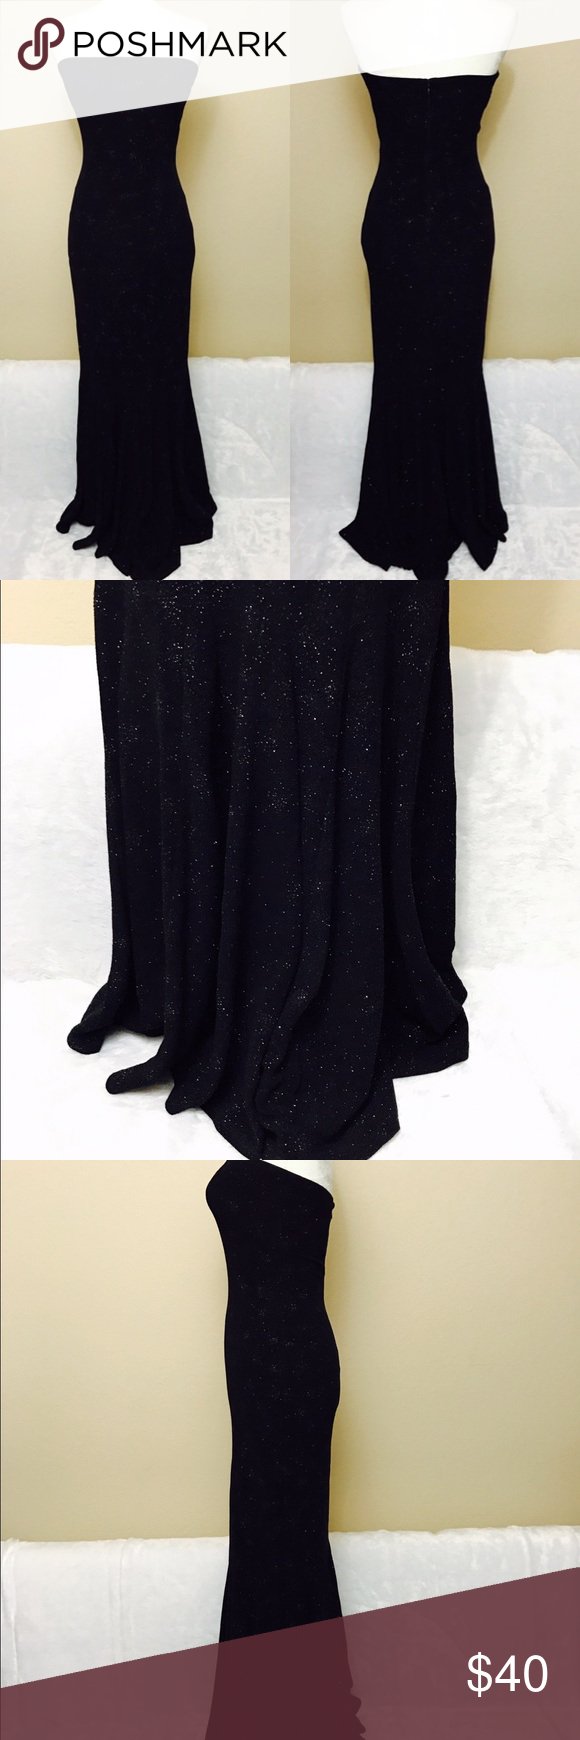 Vintage Jessica mcclintock glitter shimmer dress Great condition Vintage Dresses